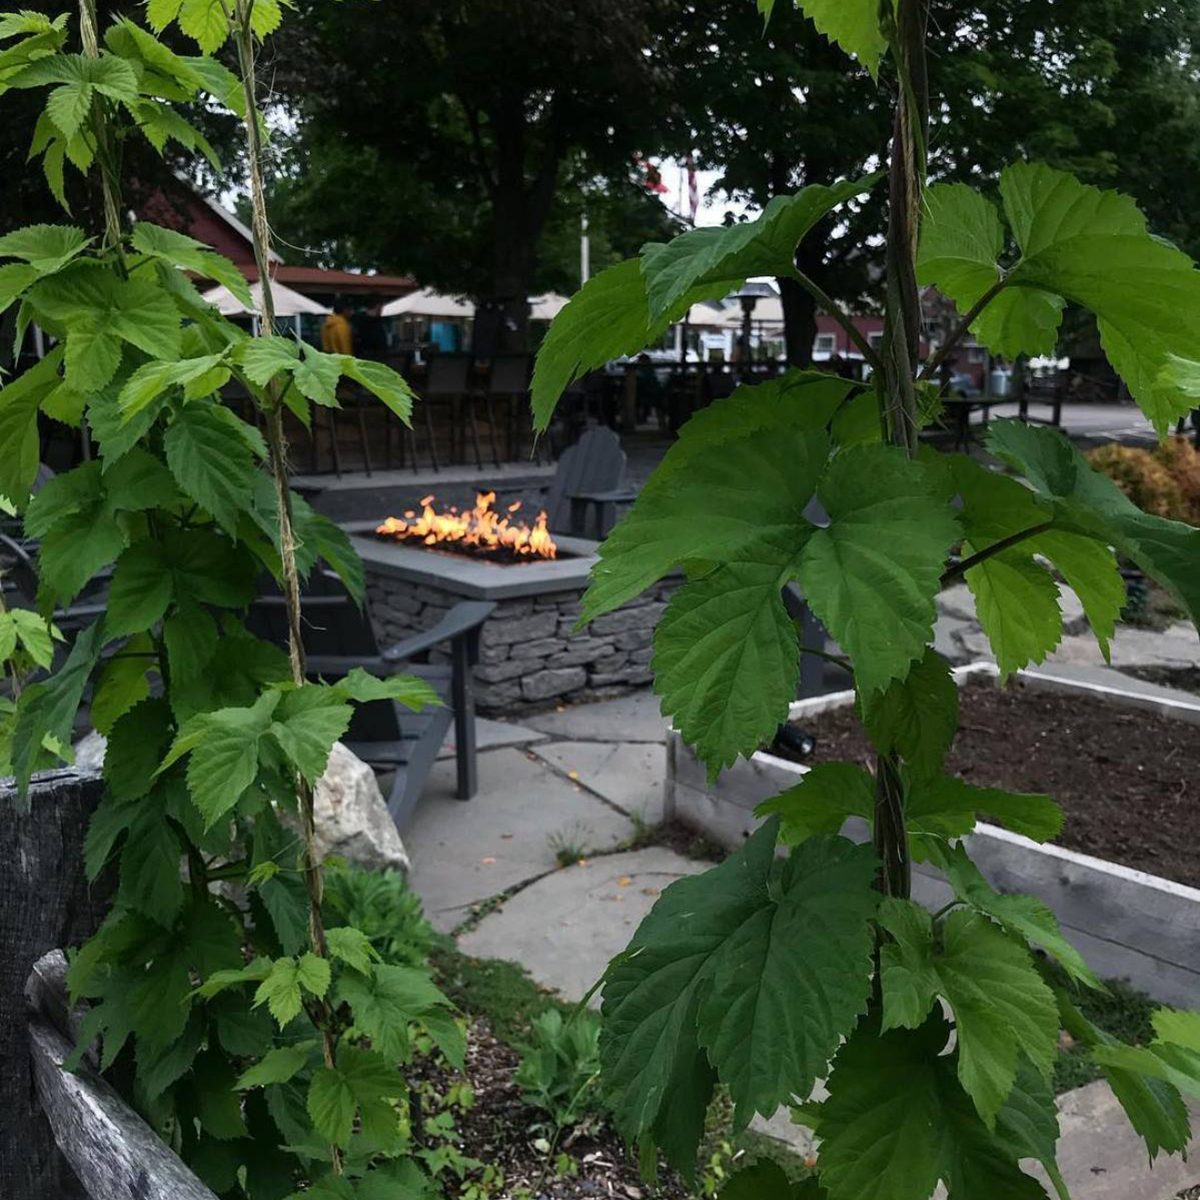 Idletyme Brewing's beer garden complete with a bonfire